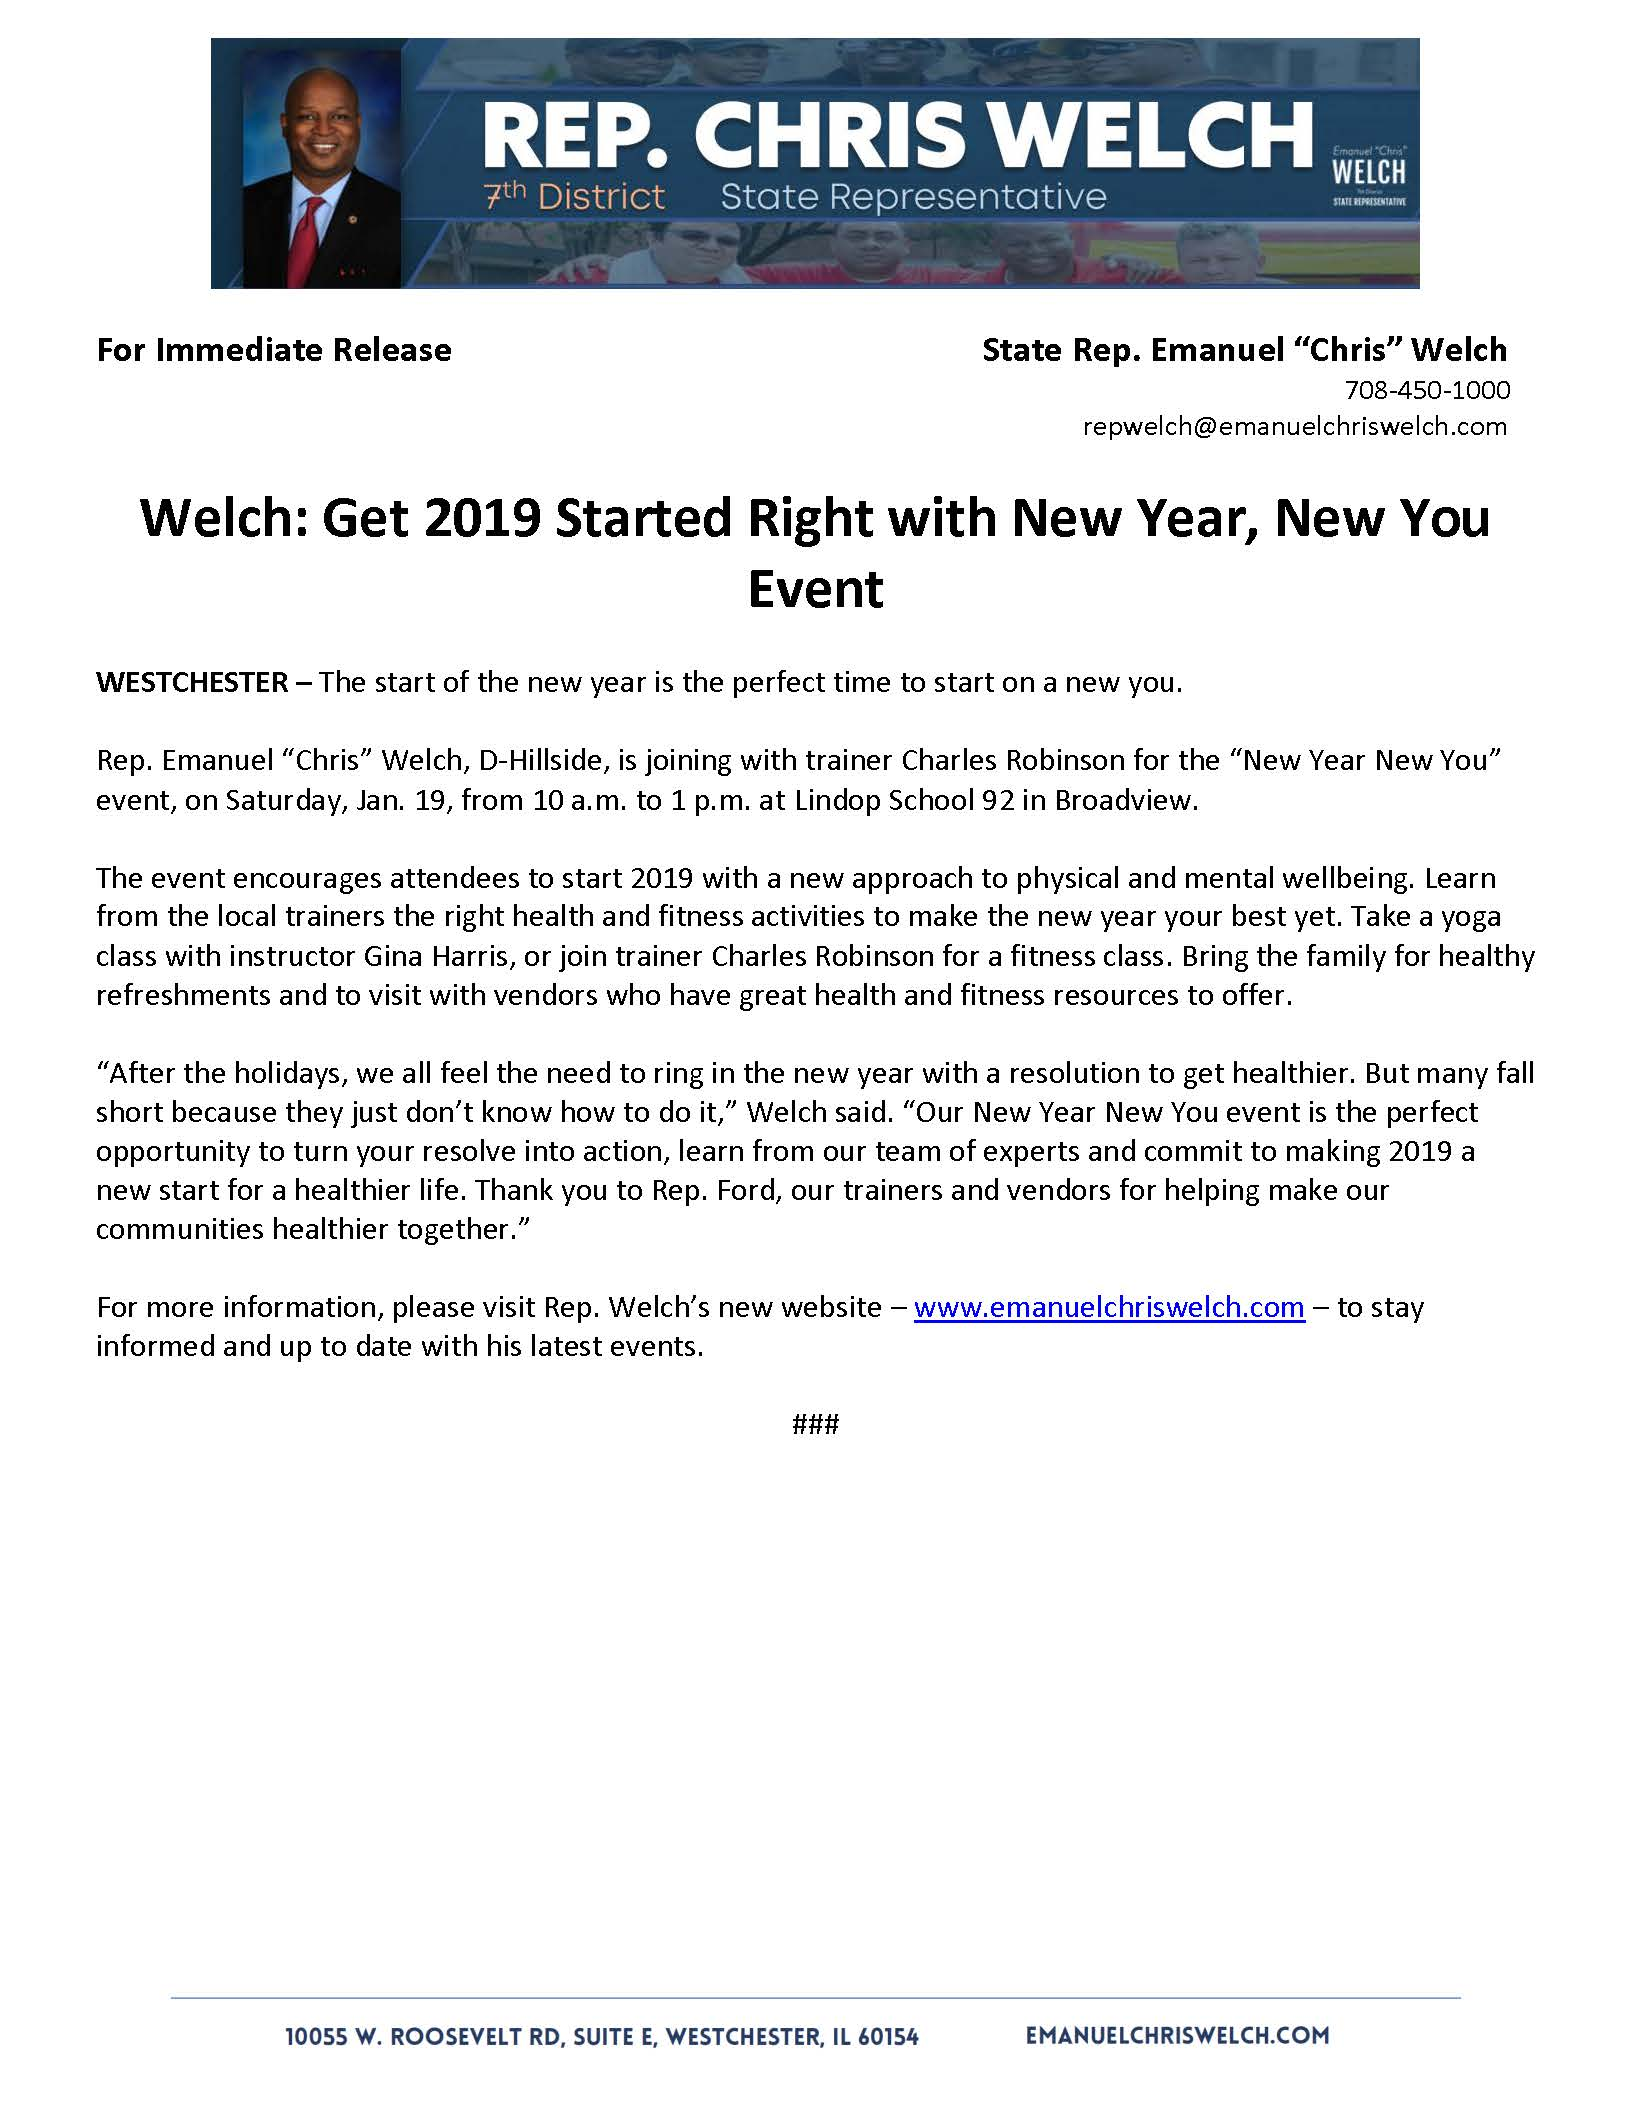 Welch: Get 2019 Started Right with New Year, New You Event  (December 18, 2018)